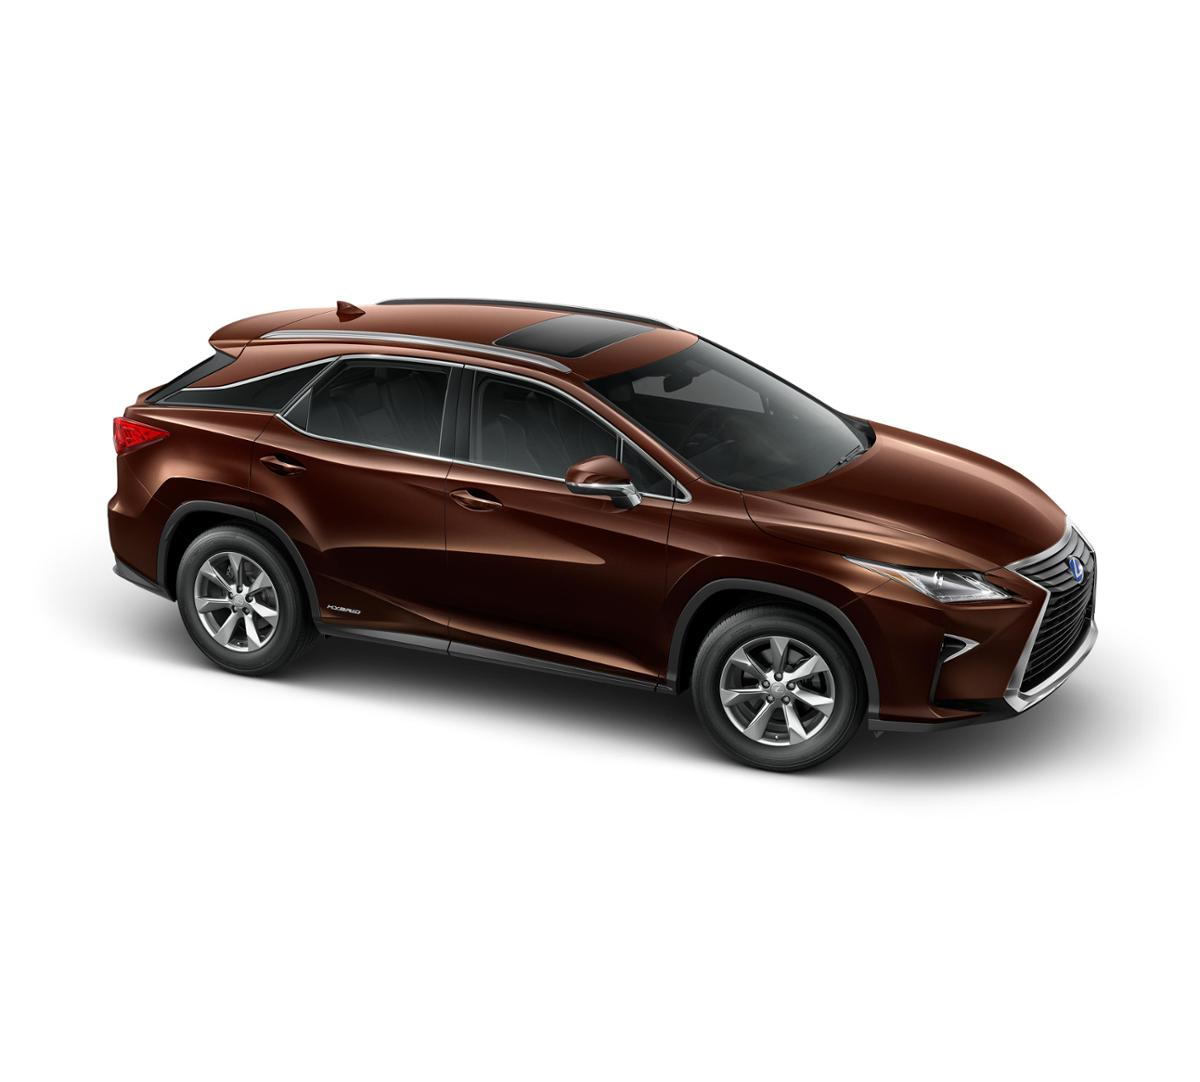 2017 Lexus Rx 450h In Autumn Shimmer For Sale In Santa